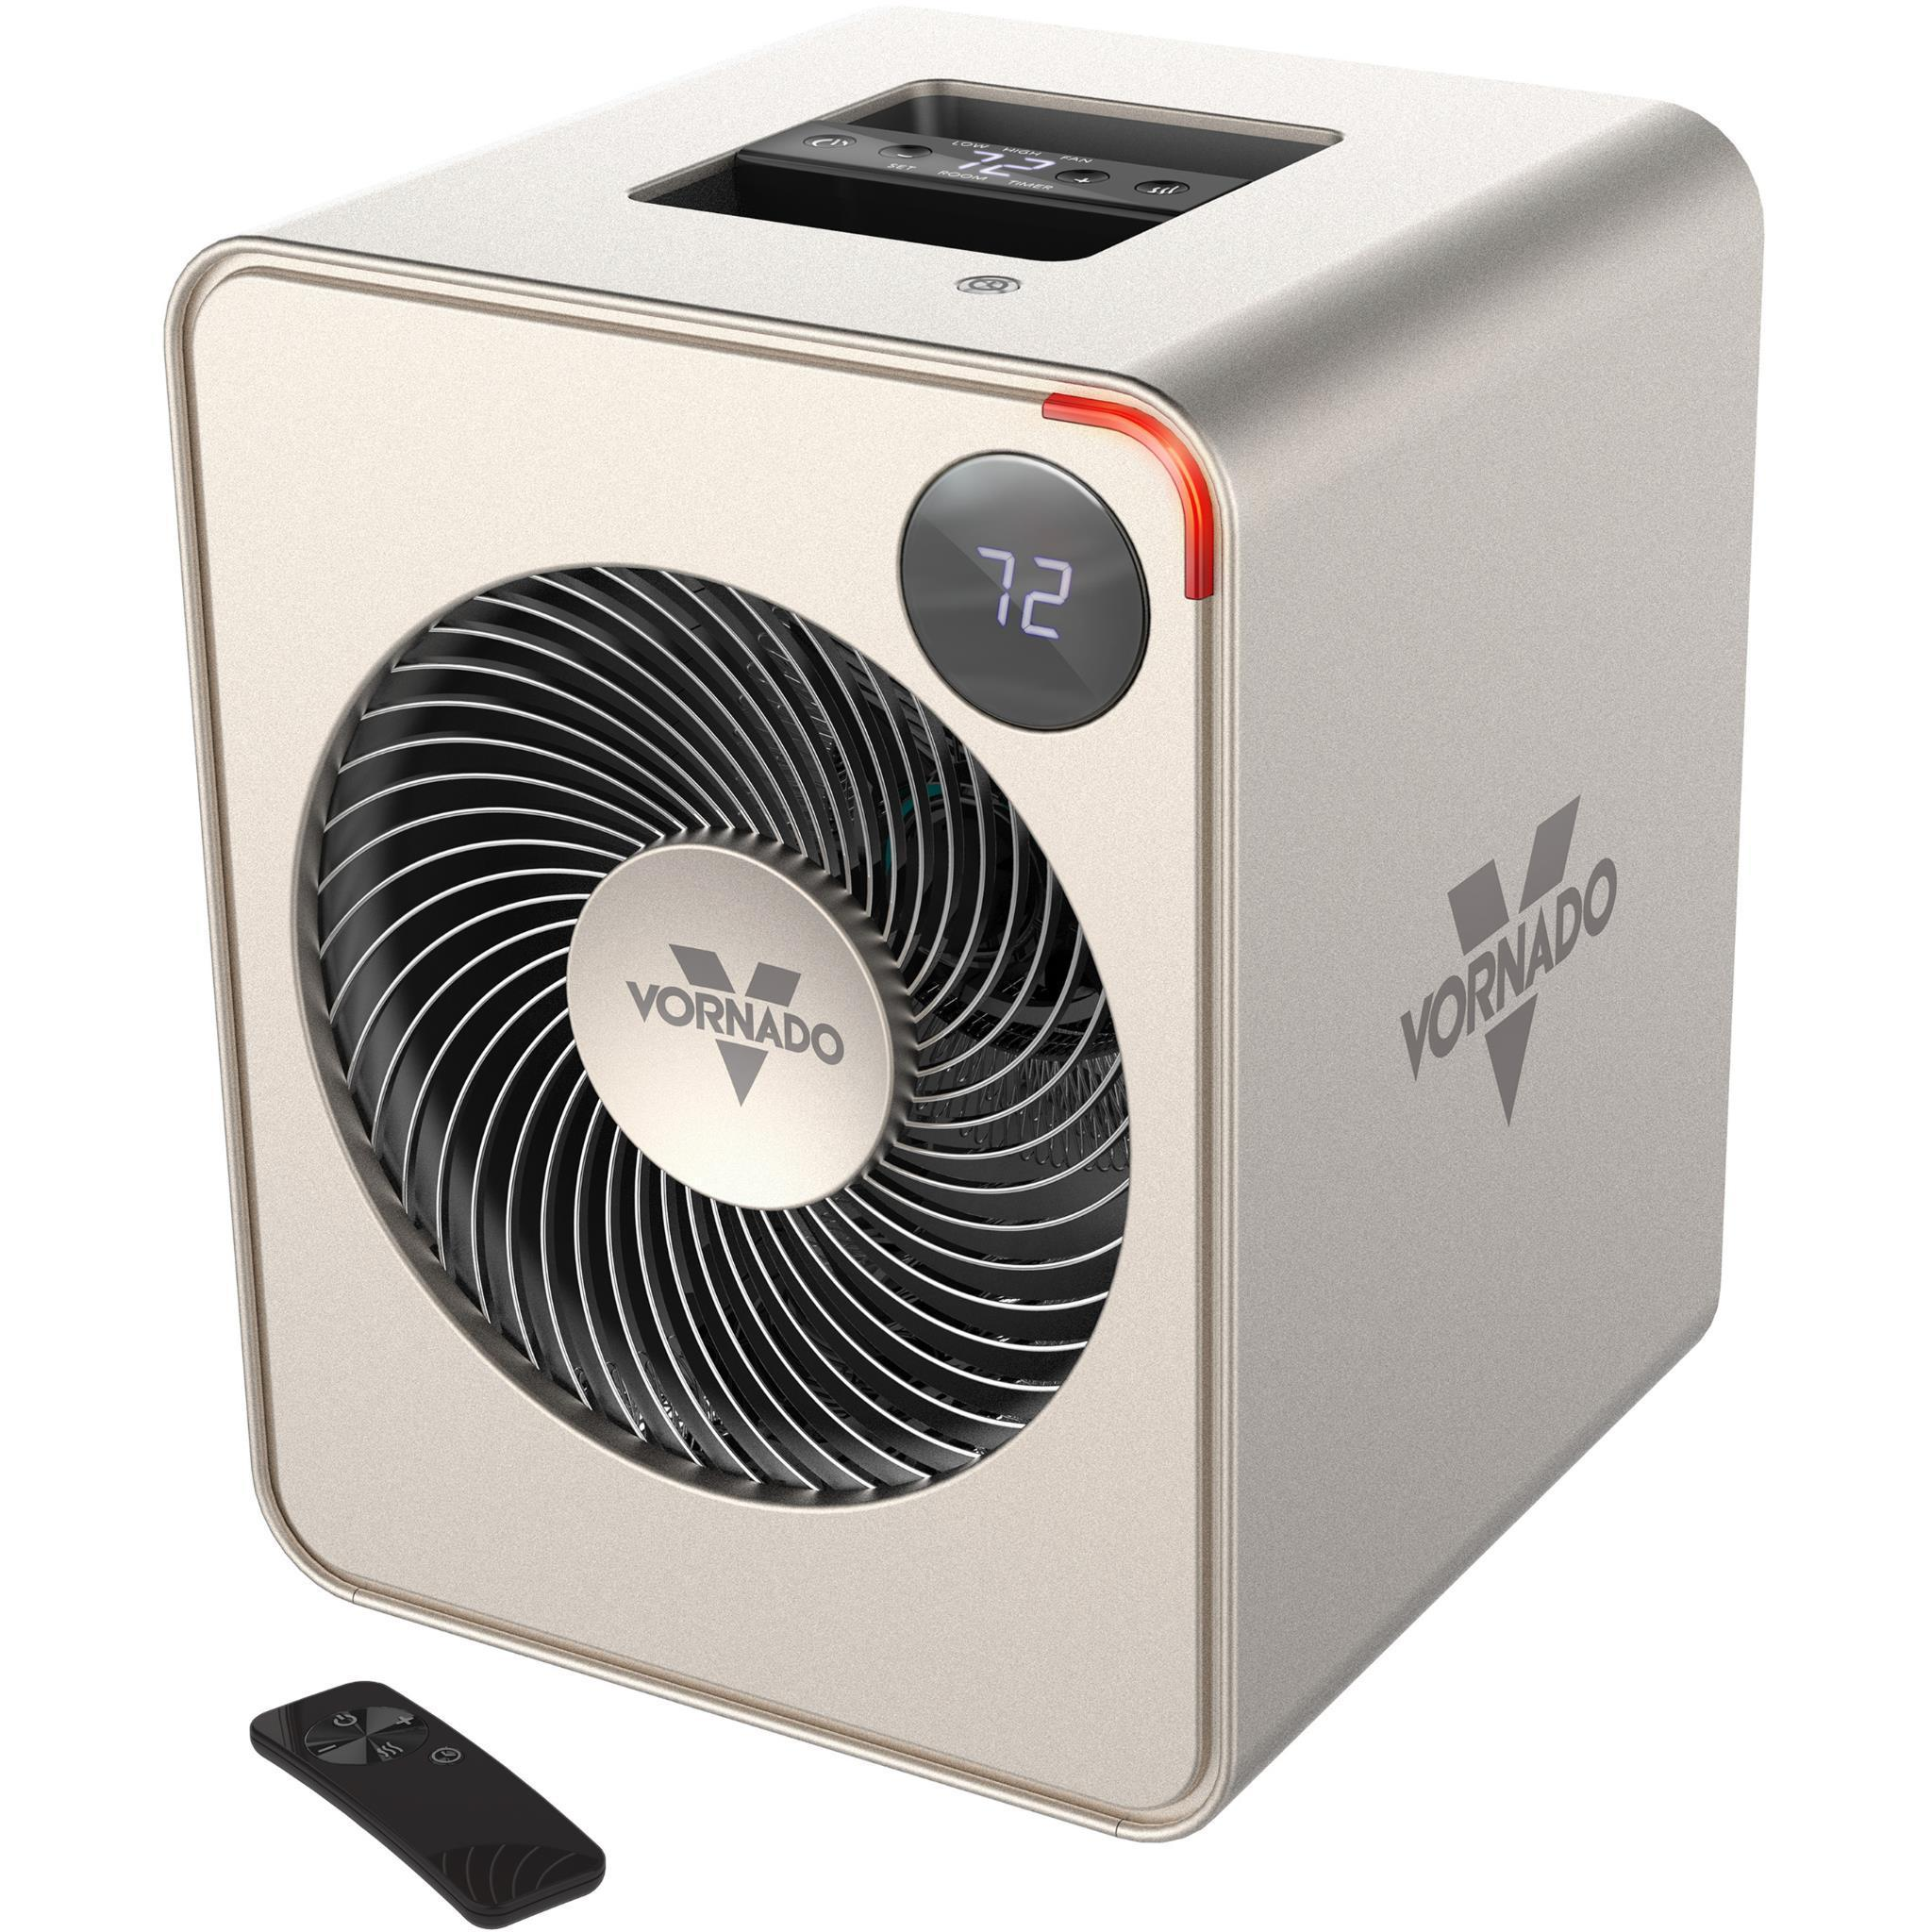 Vornado VMH350 Whole Room Heater